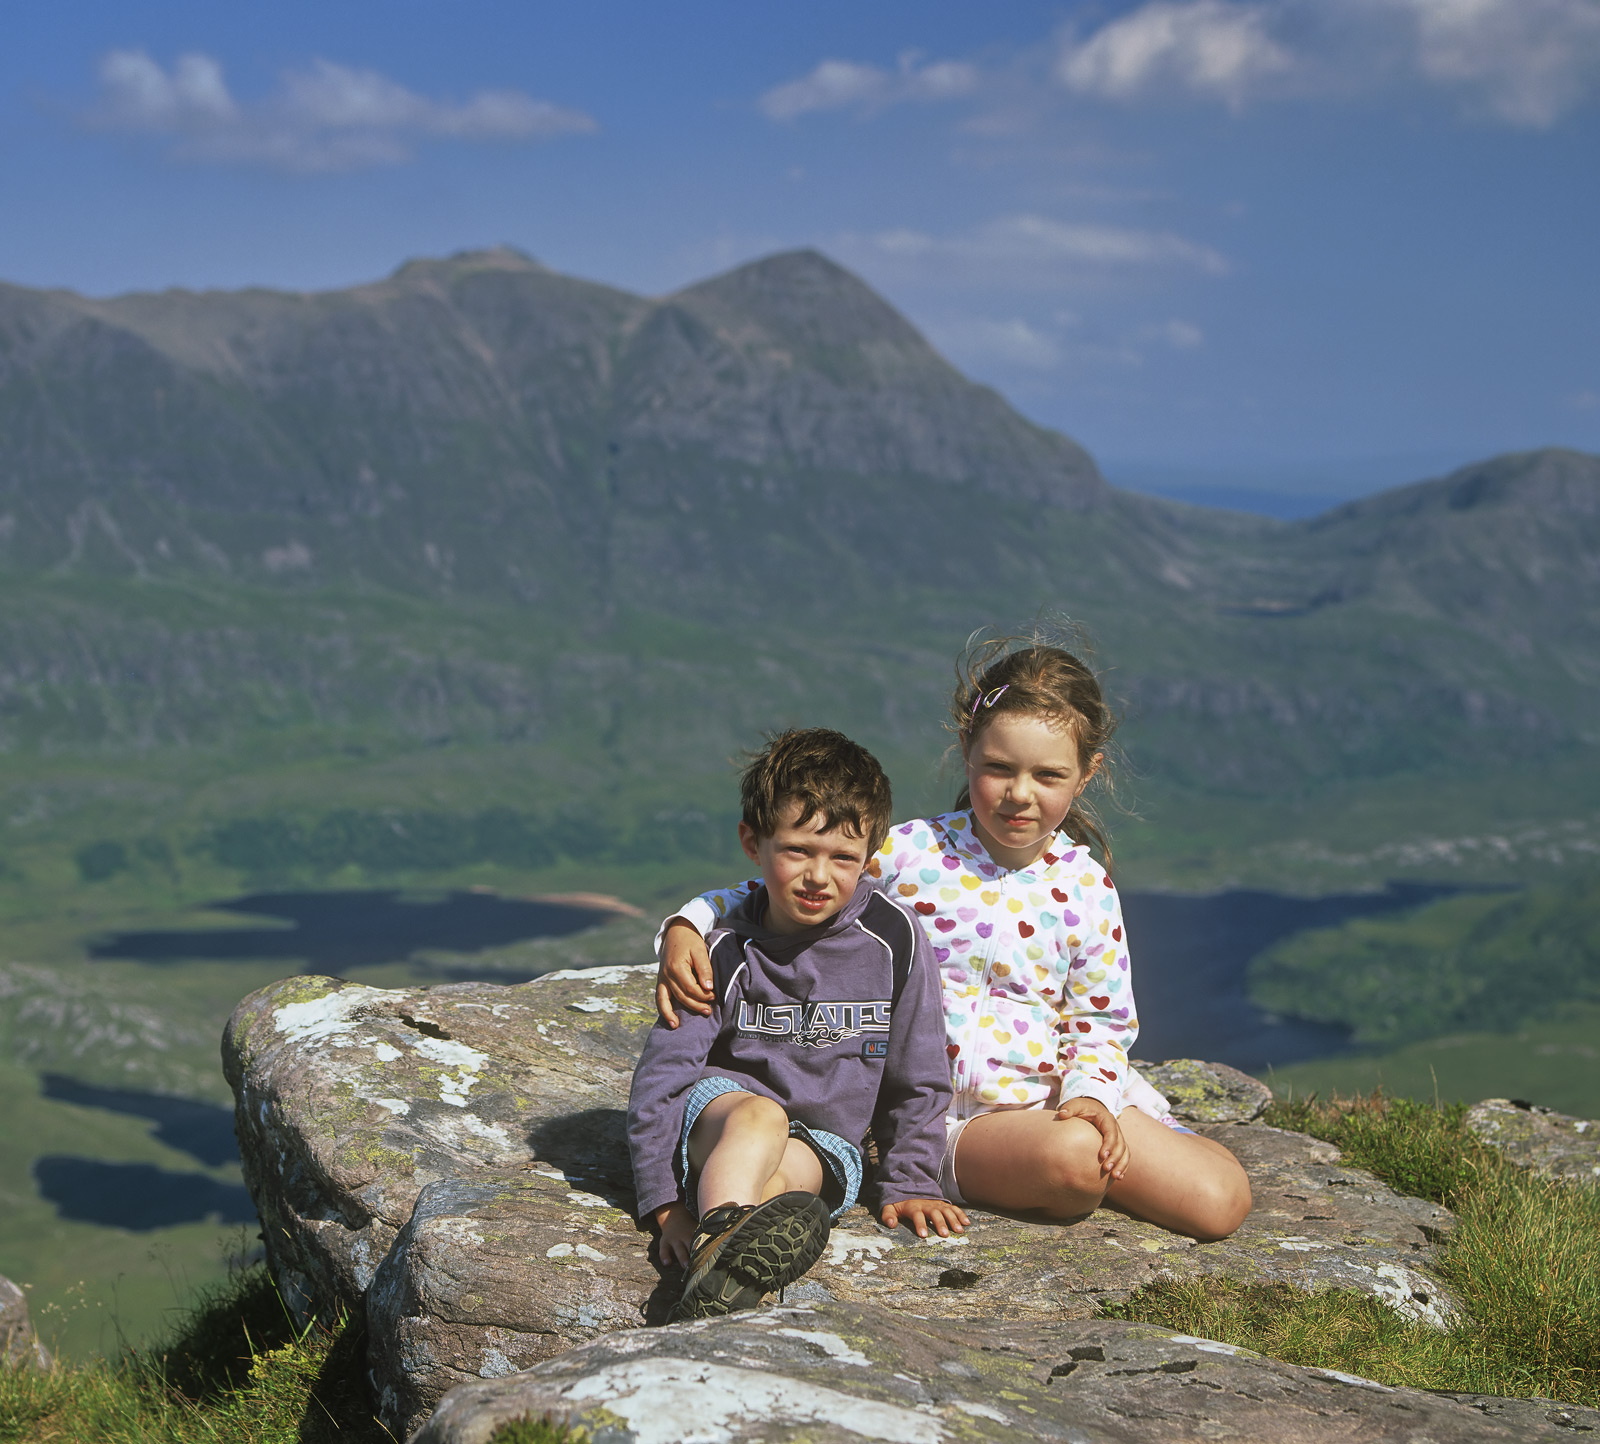 Both our children, Lauren and Ben scampered up there first Scottish hill, Stac Pollaidh without complaint and without any traumas...